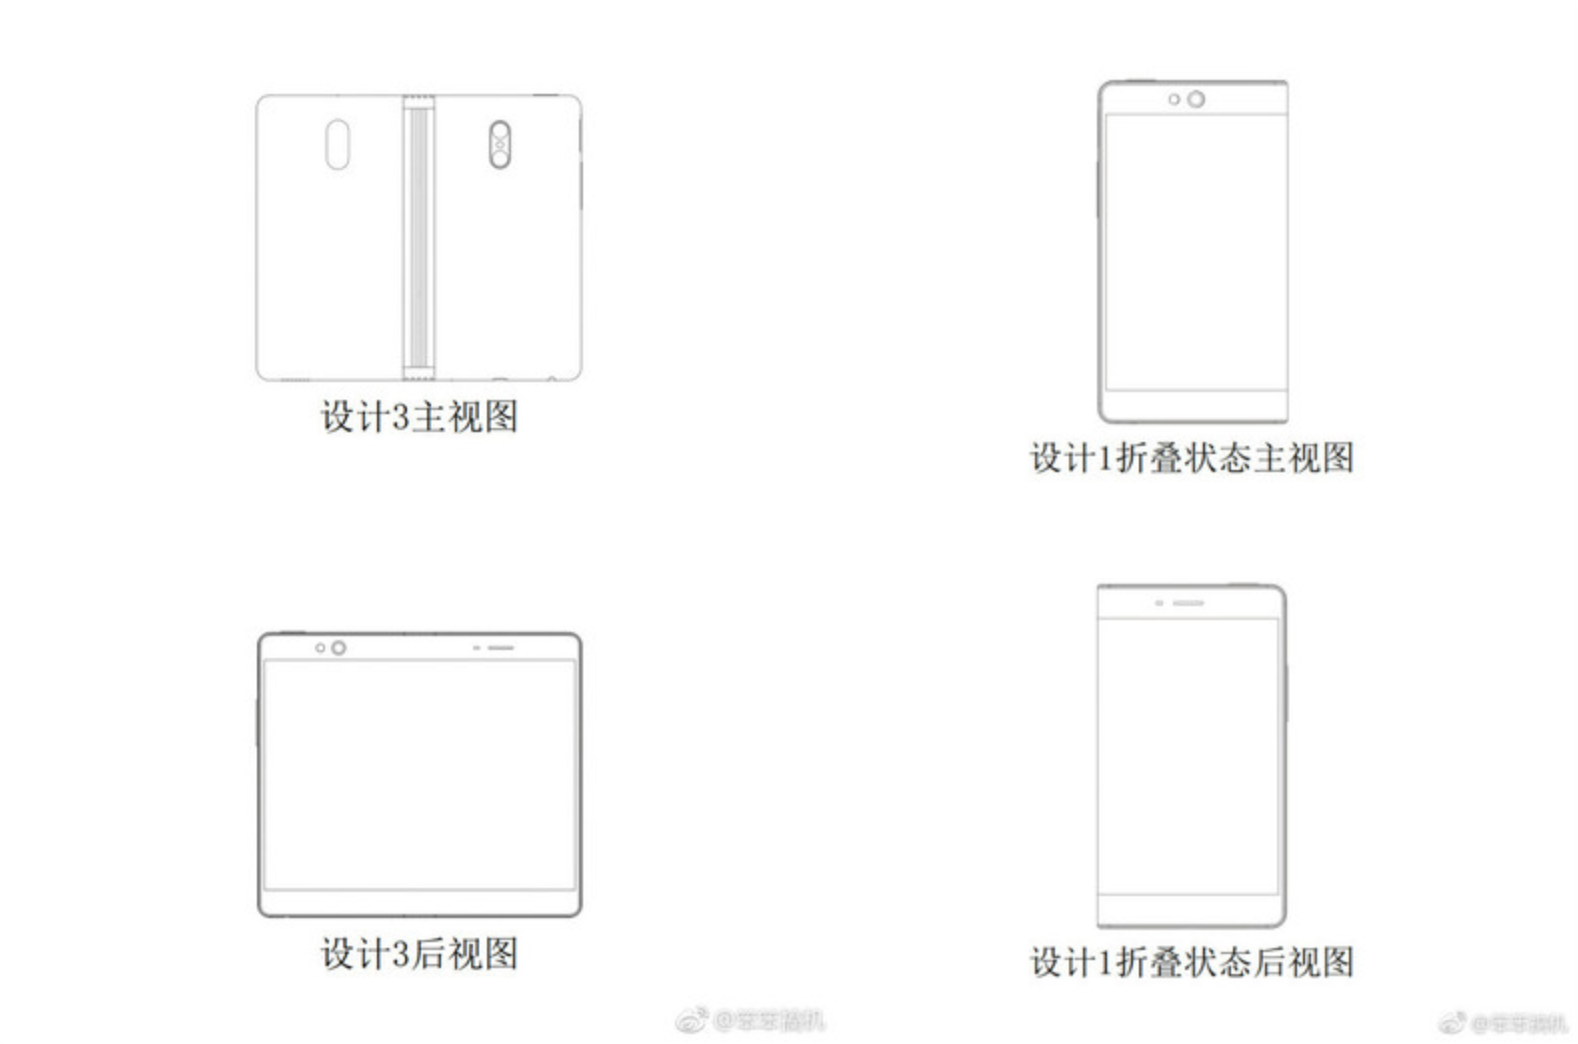 Foldable Smartphone with Single Display patented by Oppo